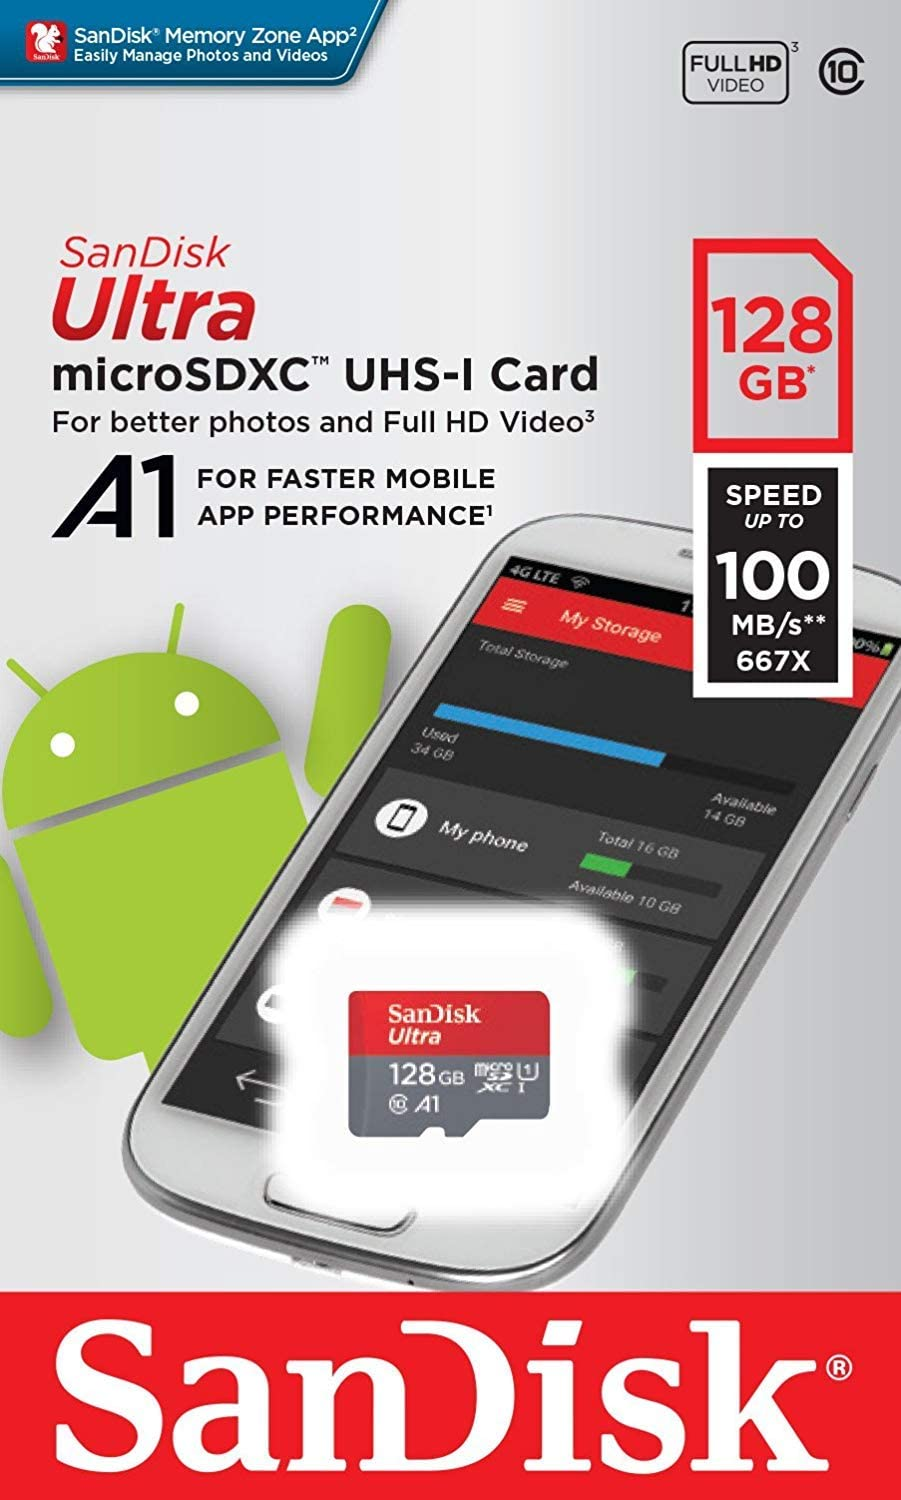 SanDisk Ultra 128GB MicroSDXC Verified for Samsung SM-N910F by SanFlash 100MBs A1 U1 C10 Works with SanDisk